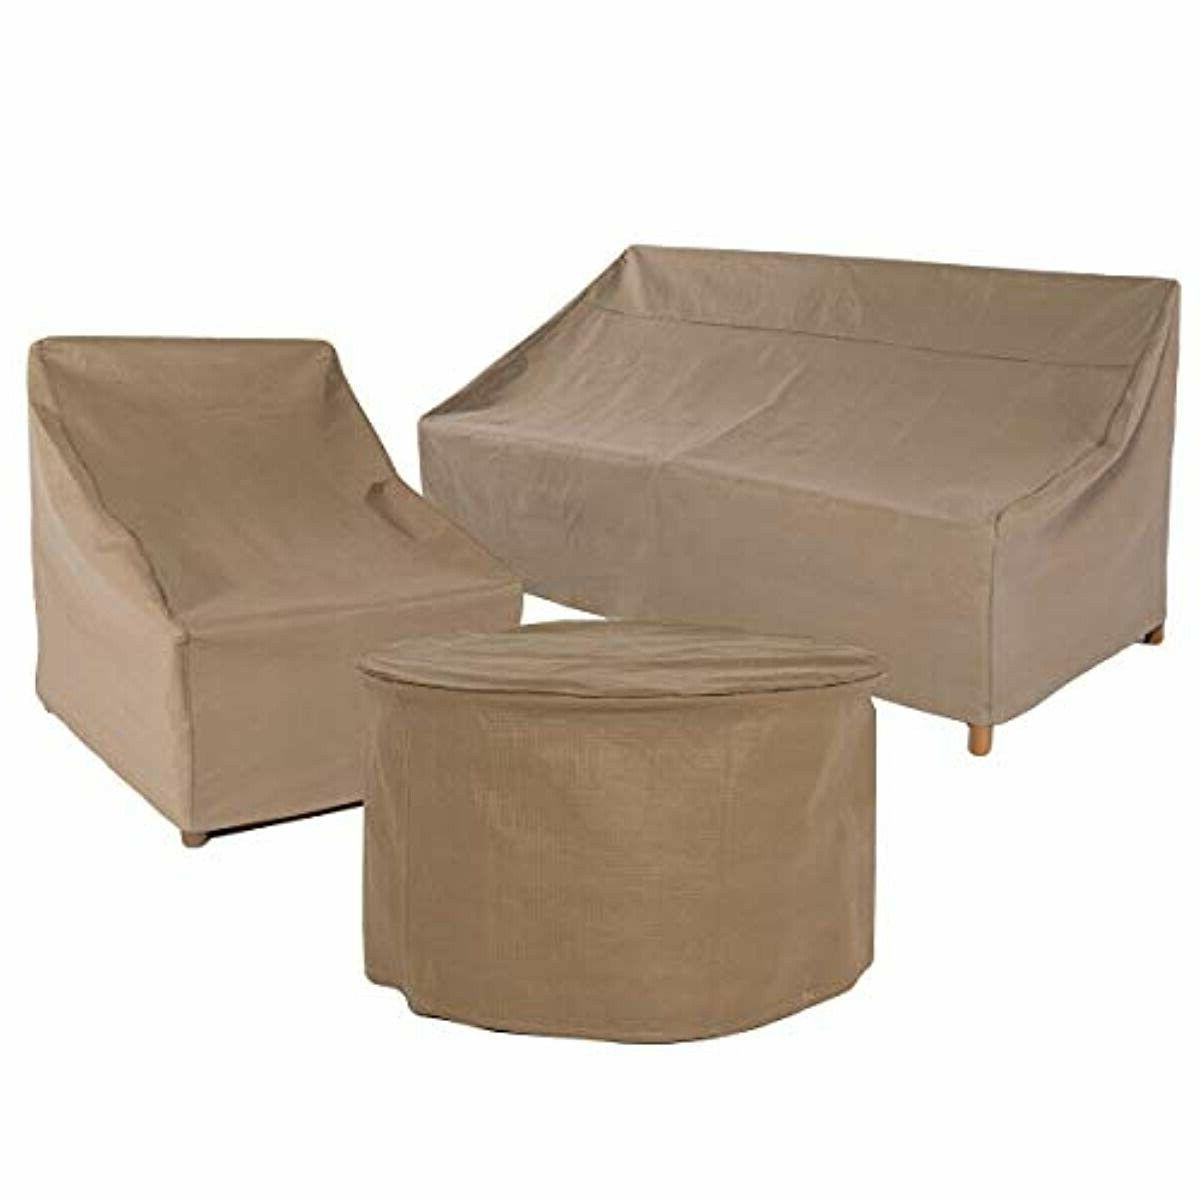 Duck Covers Essential Patio Table Set Cover, Fits